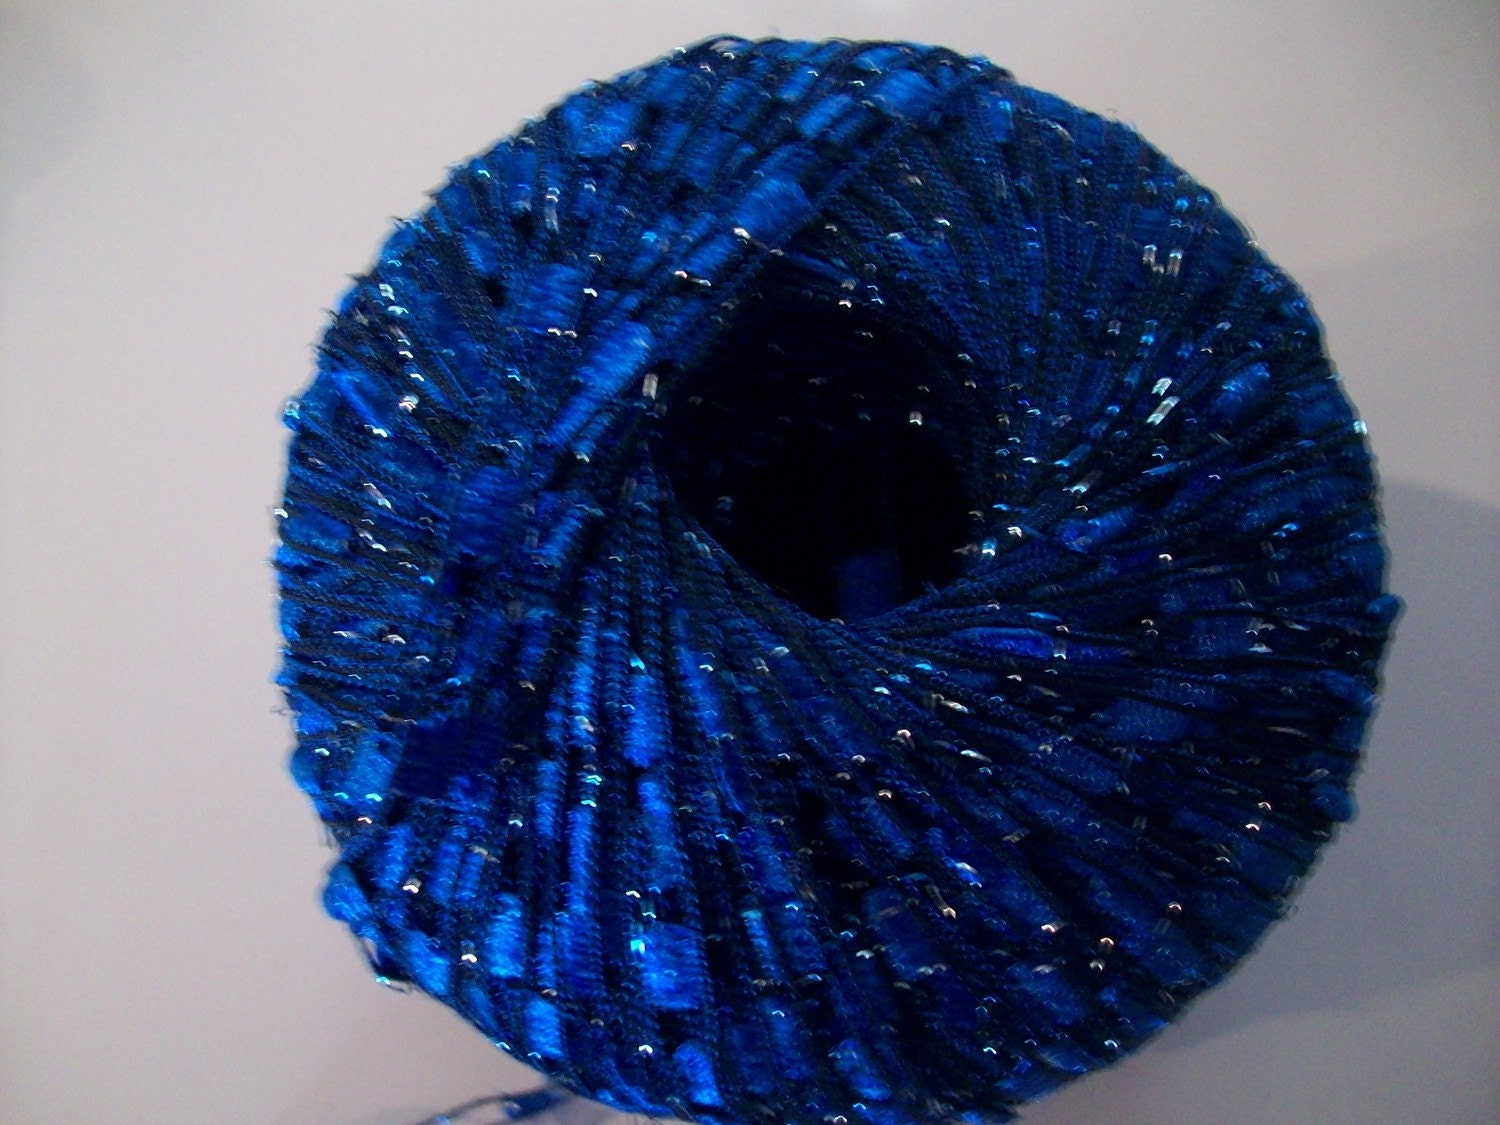 Ribbon Yarn : Metallic LIBERTY BLUE Ladder Ribbon Yarn by ICE Yarns by CraftEZ